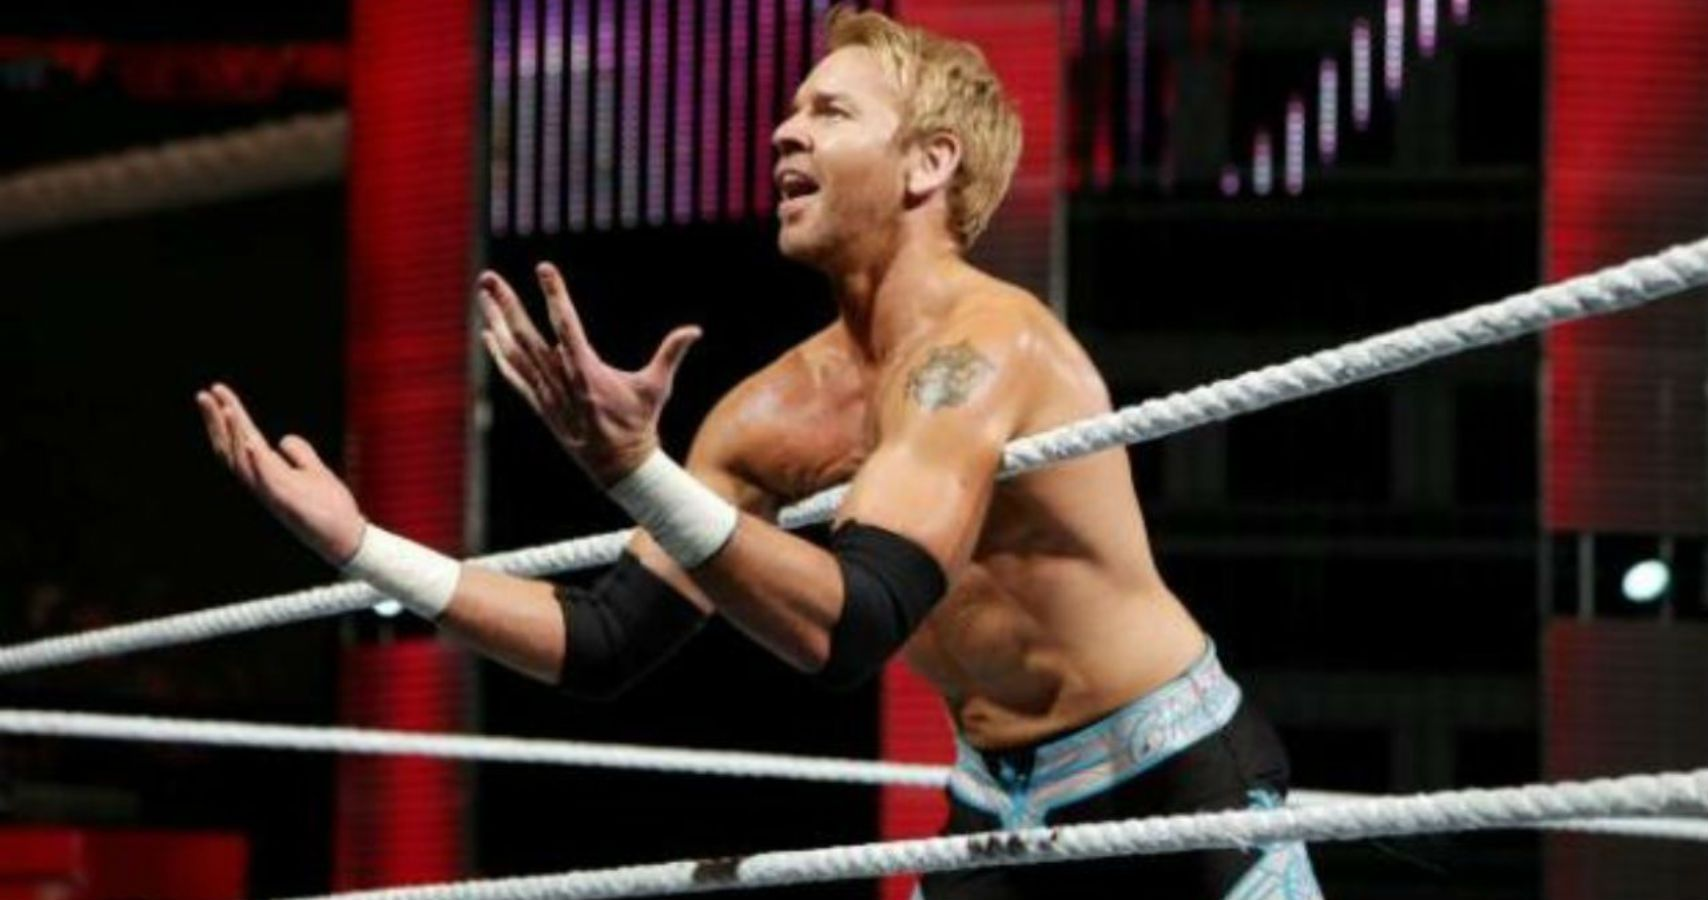 chistian wwe explains never got proper send-off after the bell podcast interview